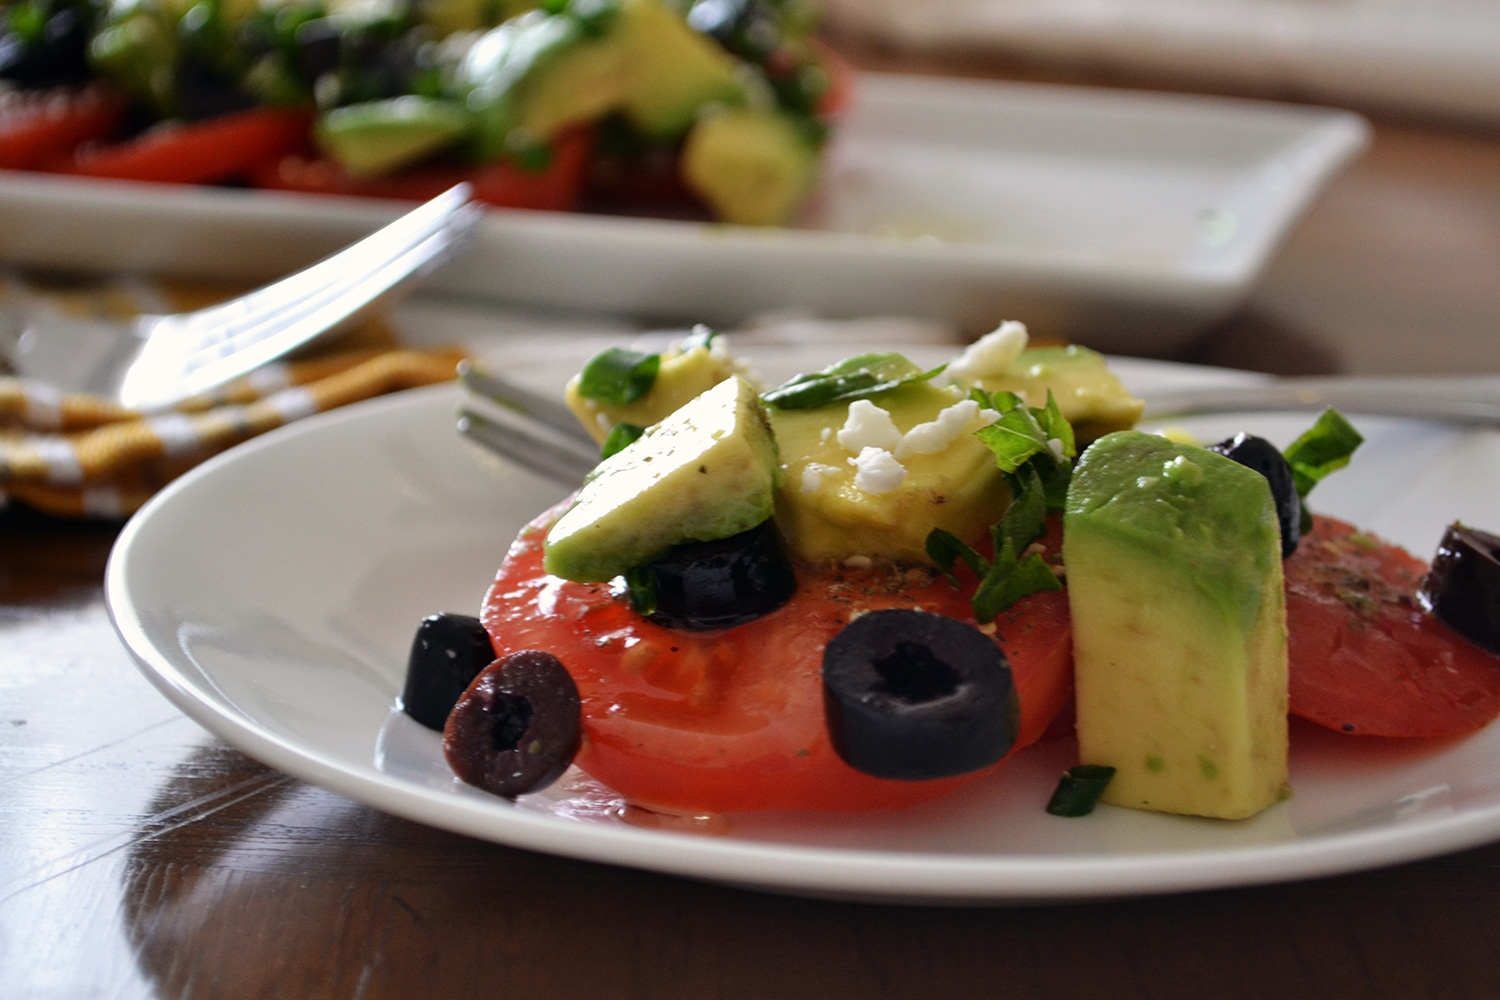 Tomato-and-Avocado-Salad-e